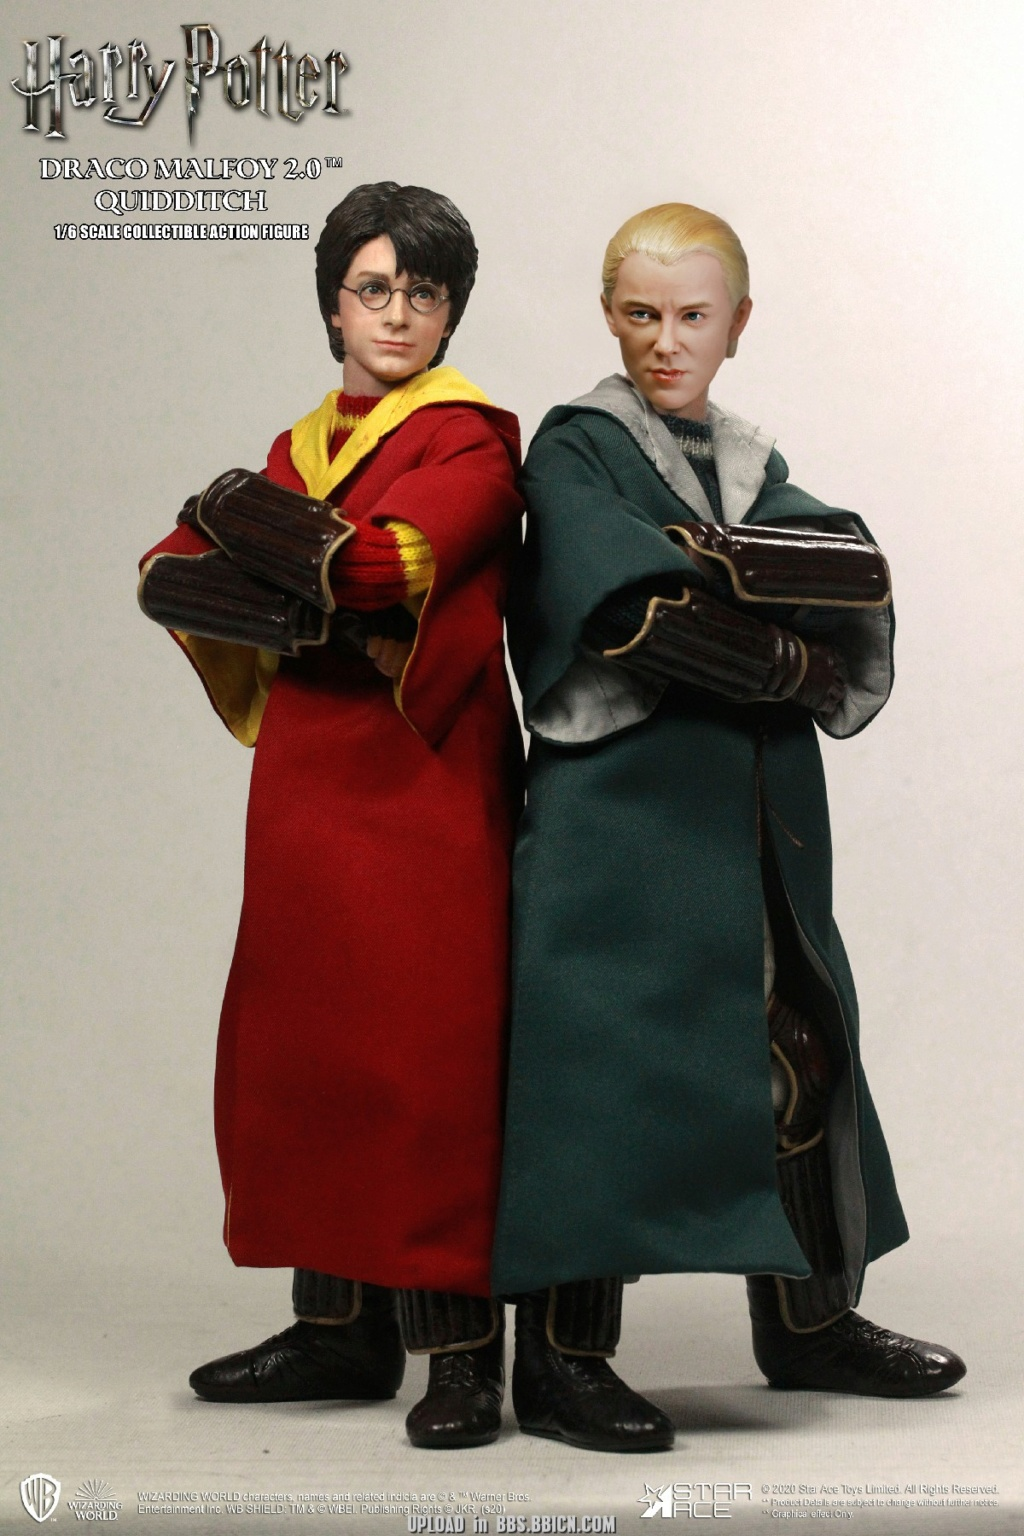 DracoMalfoy2 - NEW PRODUCT: STAR ACE Toys: 1/6 Harry Potter + Malfoy 2.0 Playing Set & Single & Uniform Edition 16592410